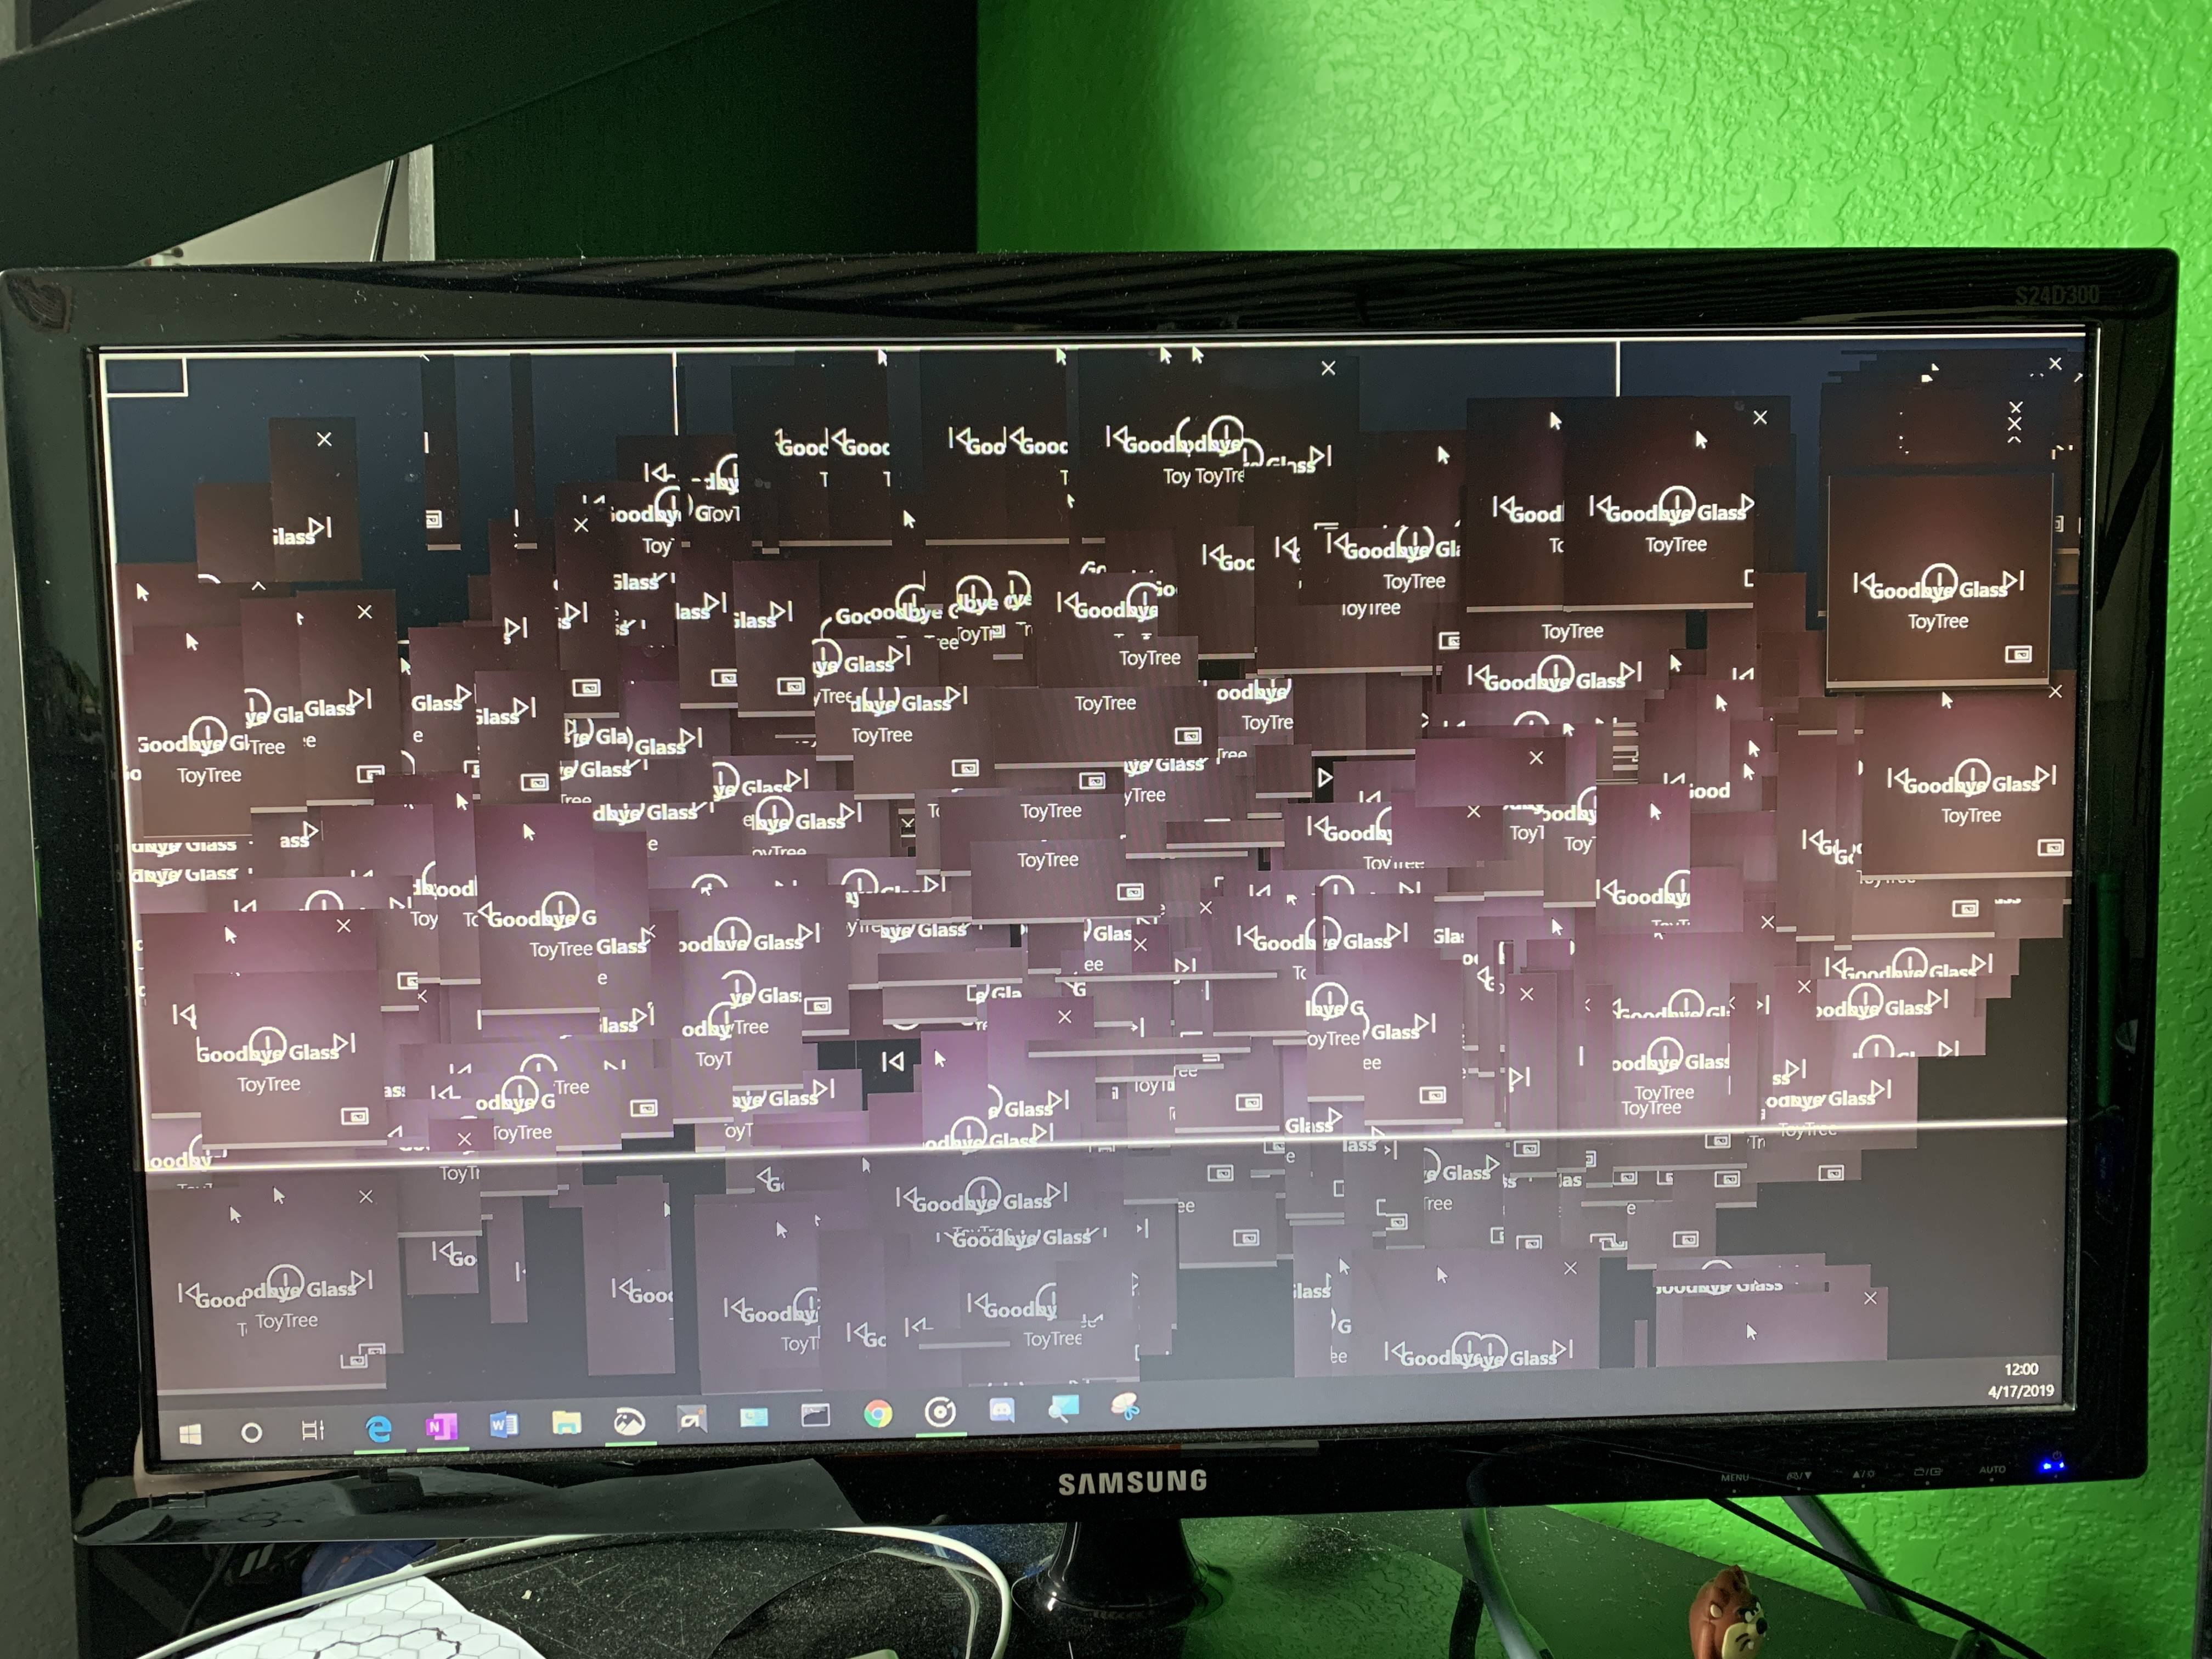 Screen tearing and other issues - Troubleshooting - Linus